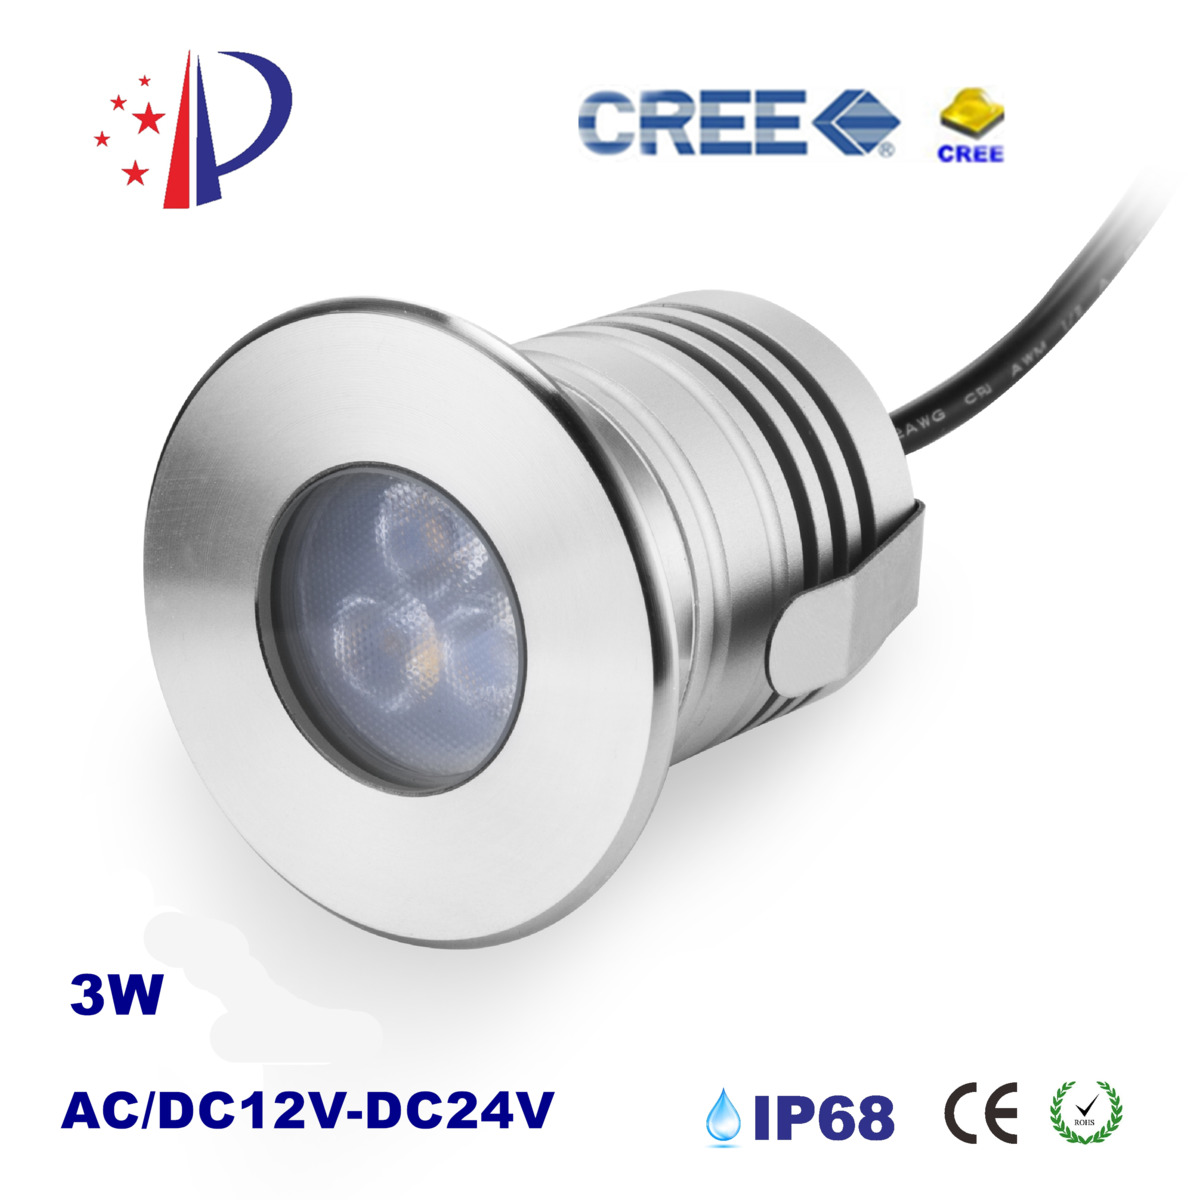 Lights & Lighting 3w Led Underwater Lamp Pool Light Ip68 Waterproof Light For Pond Fountain Dc12-24v Safety Swimming Pool Light With Cree Chip Led Lamps